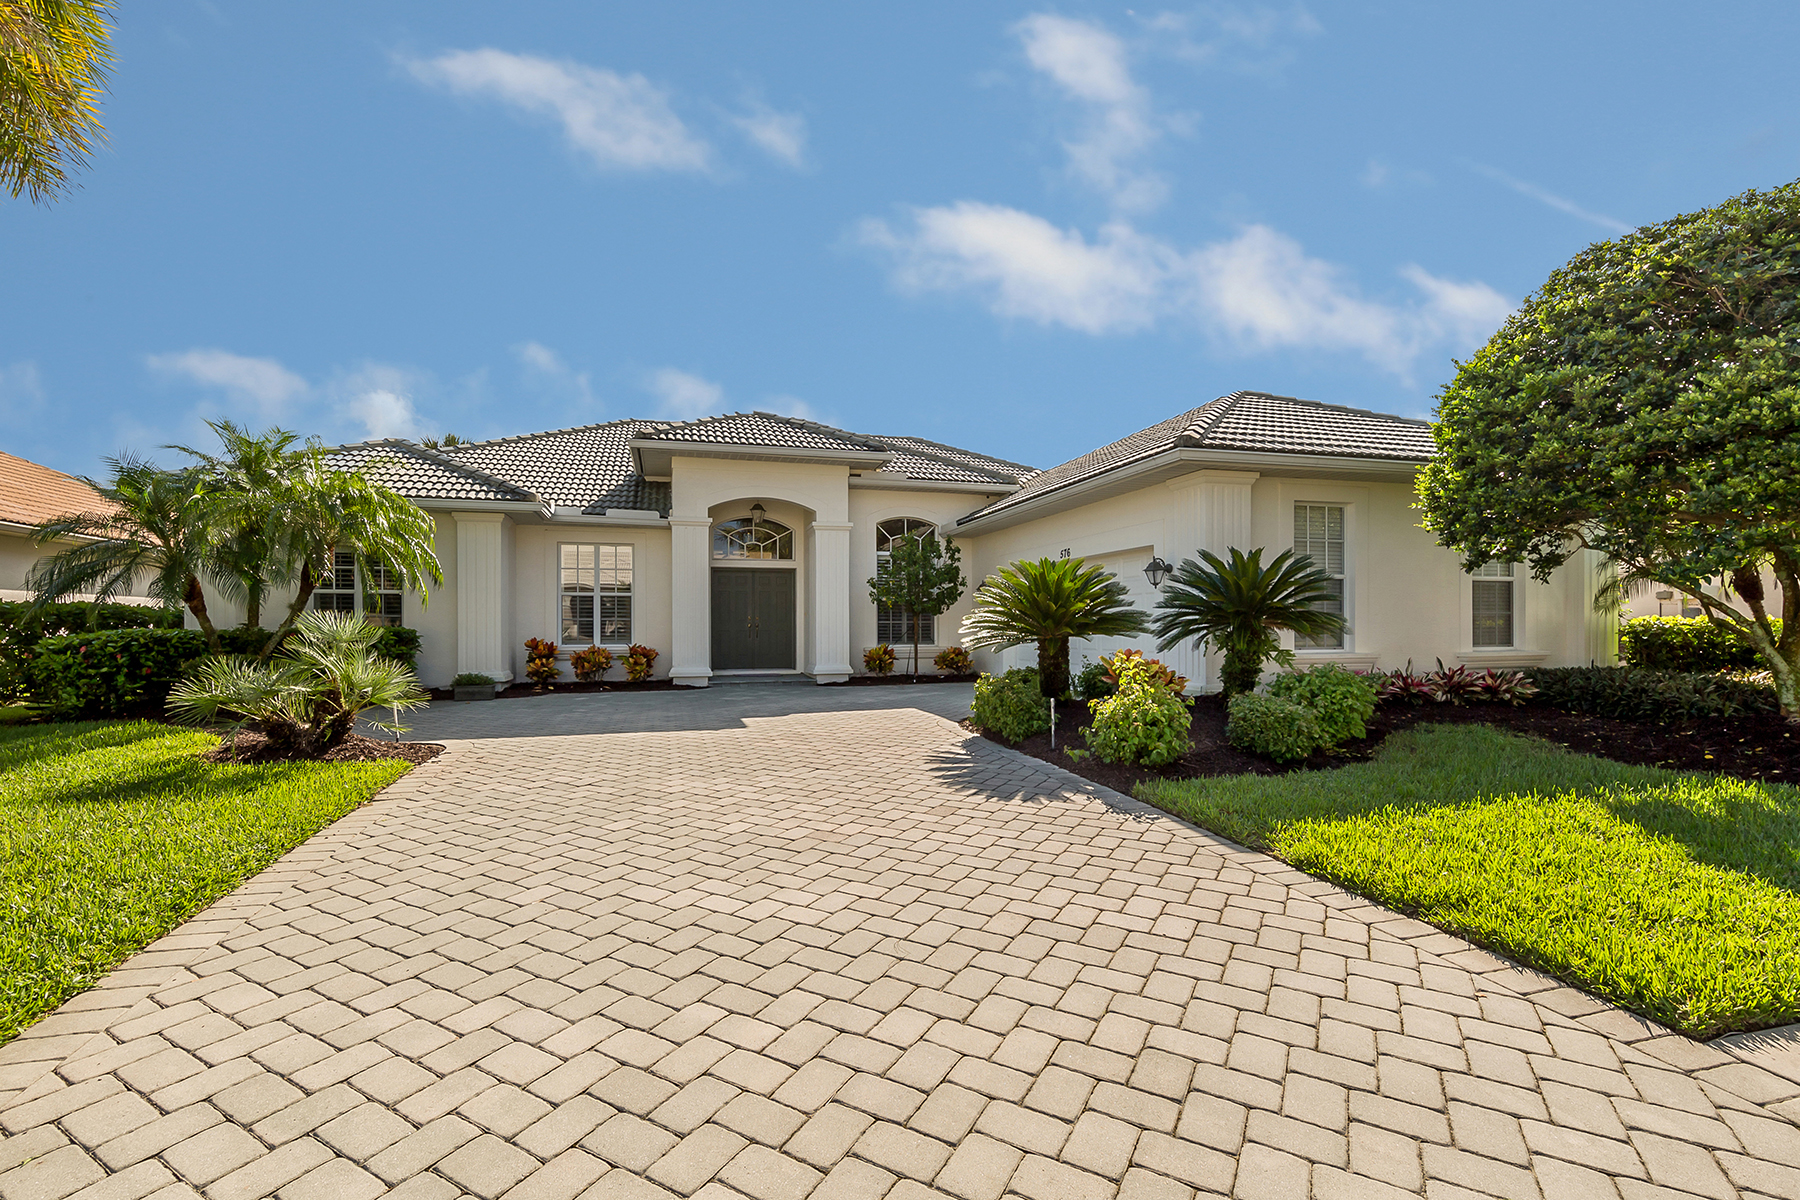 Single Family Homes for Sale at 576 Sawgrass Bridge Road, Venice, Florida 34292 United States